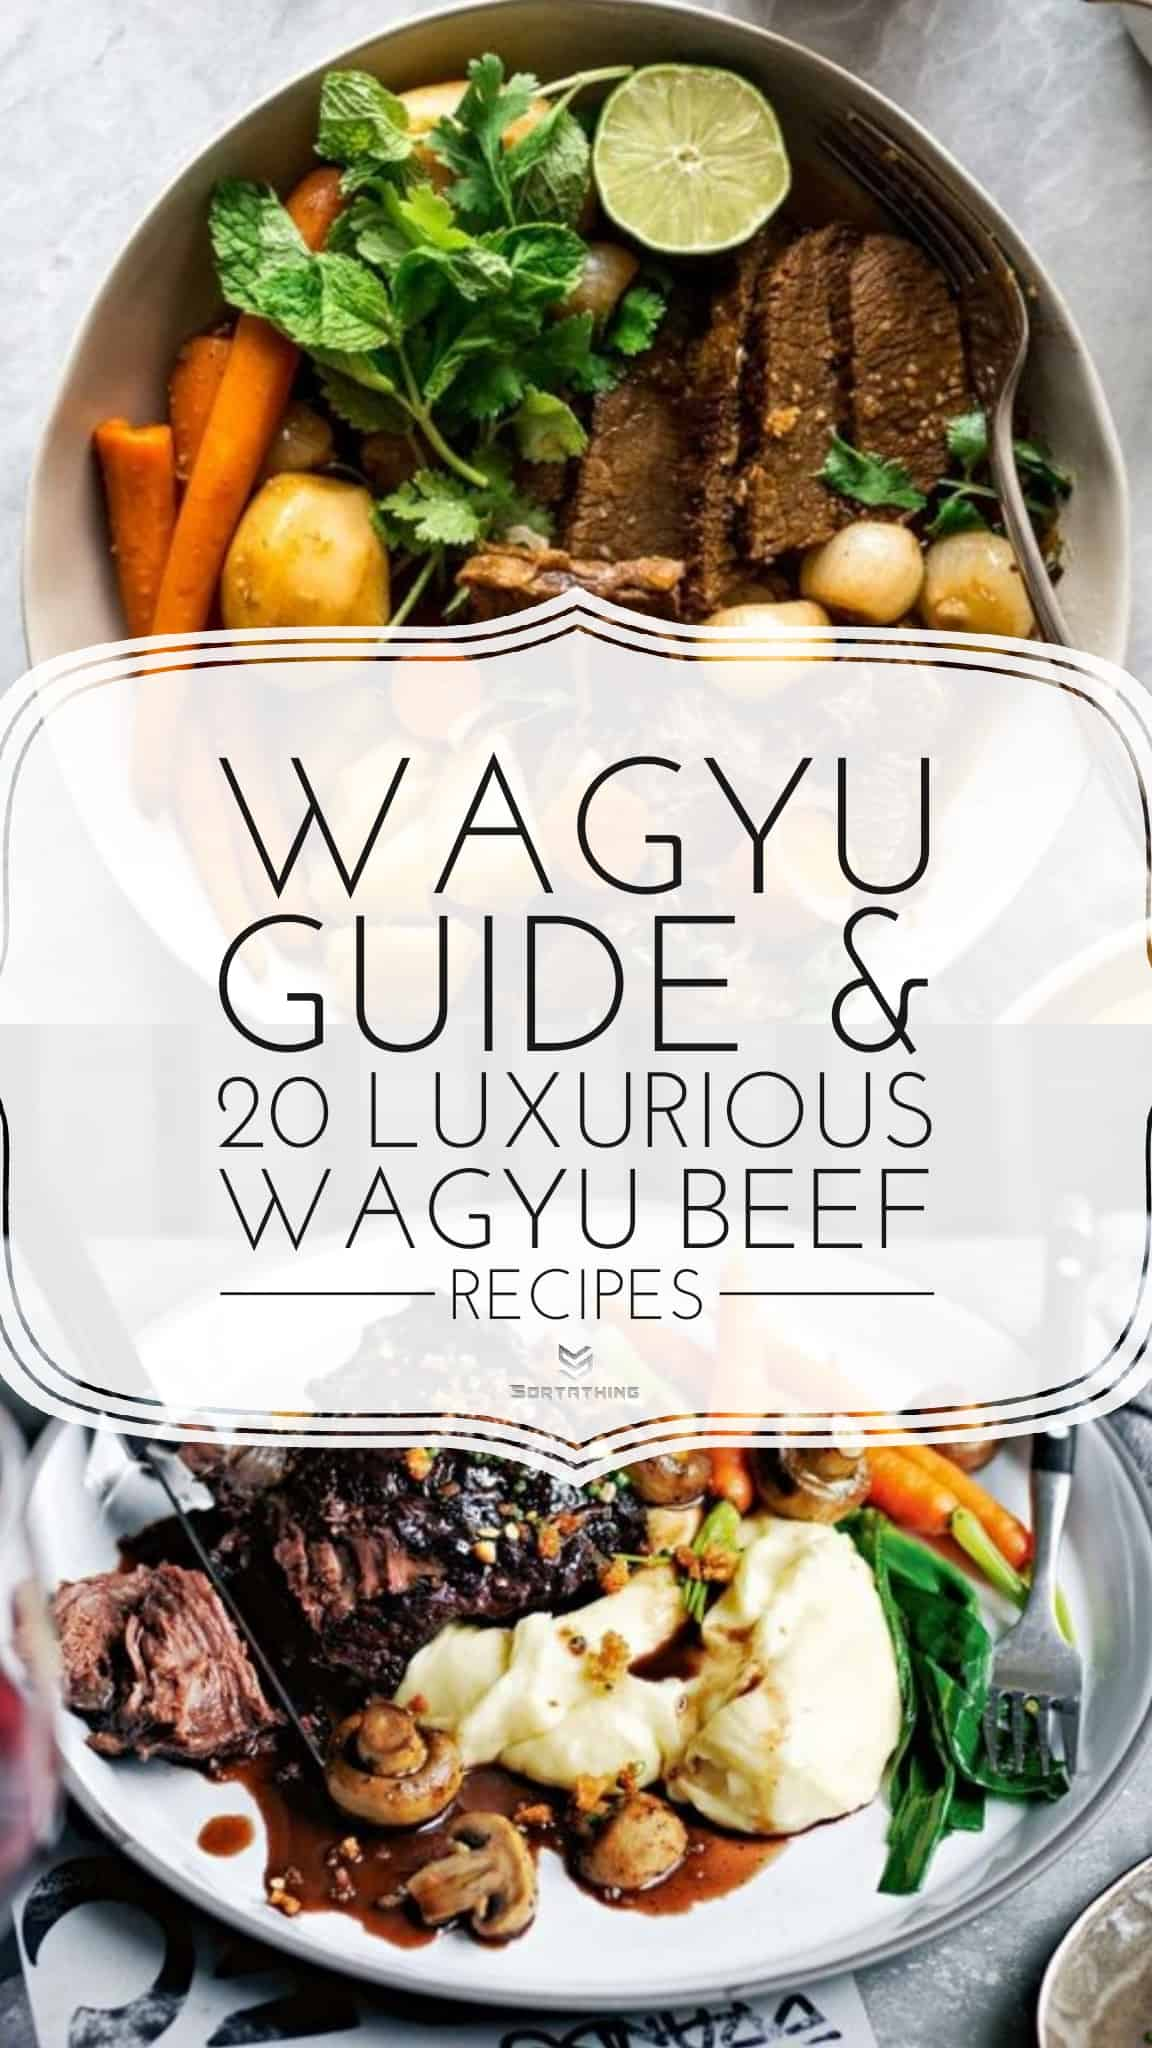 Vietnamese Braised Wagyu Brisket Recipe and Daube with Wagyu Beef